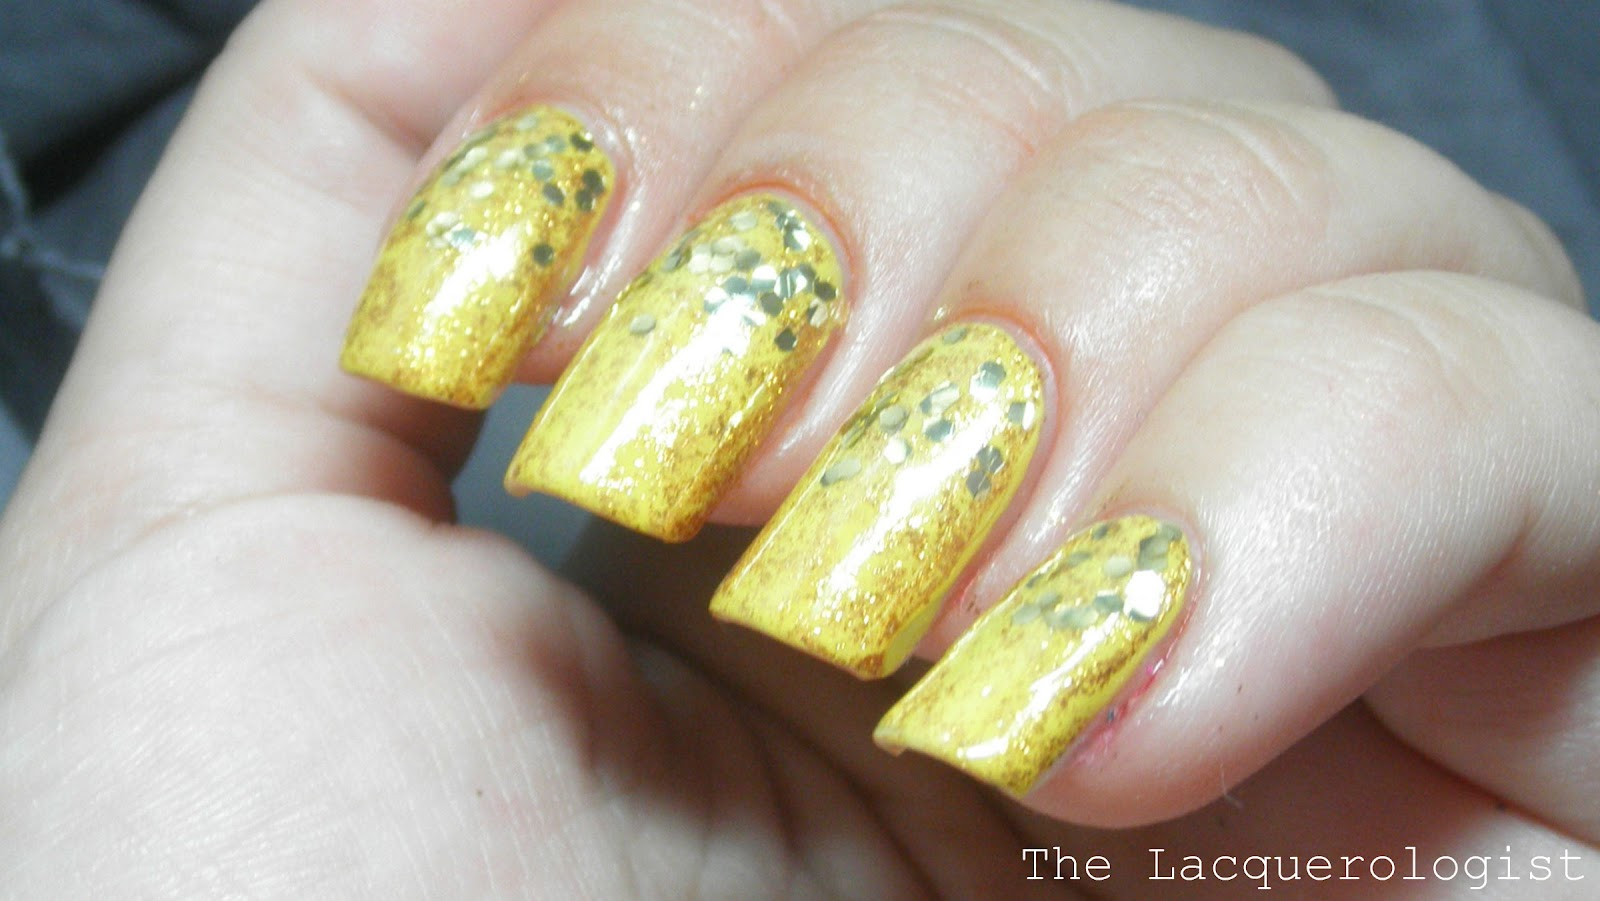 31 Day Nail Art Challenge: Day 3 - Yellow Nails • Casual Contrast